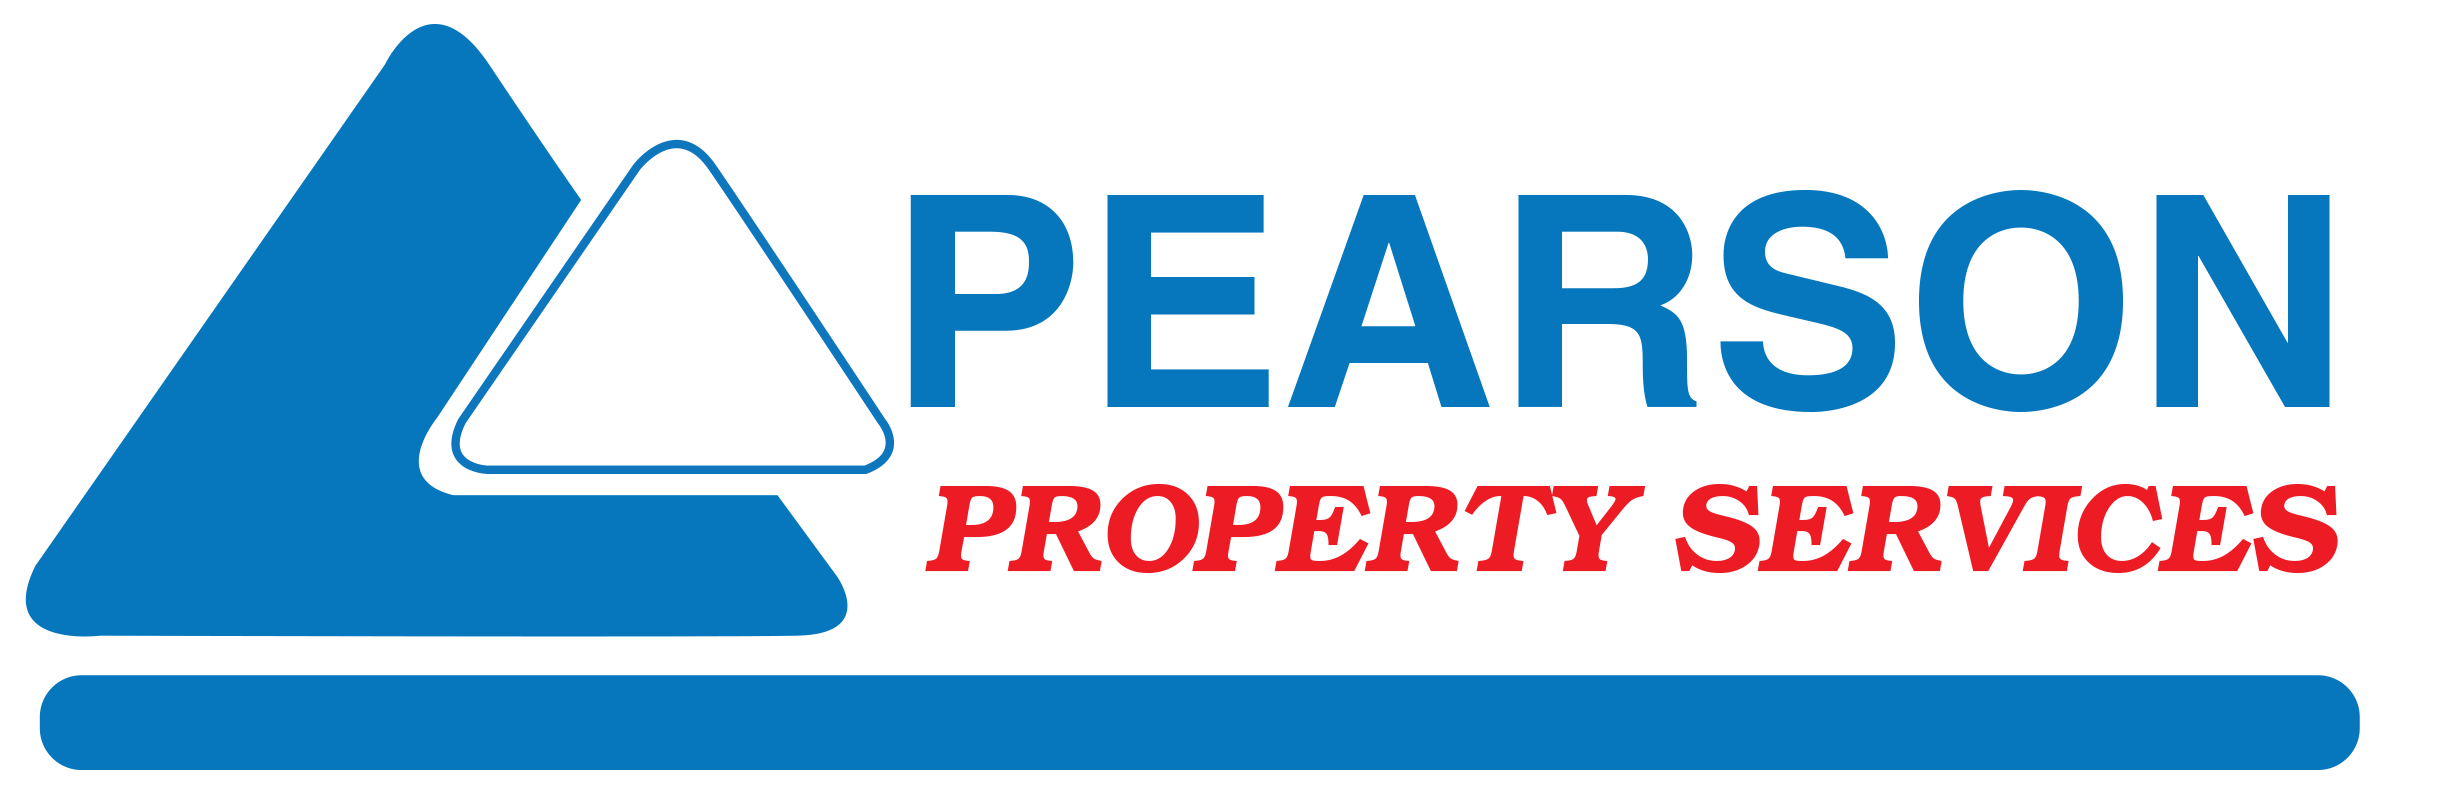 Pearson Property Services Uganda,Property Marketing,Tenant Selection,Rent Collection, Repairs & Maintenance, Land Title Processing and Surveying